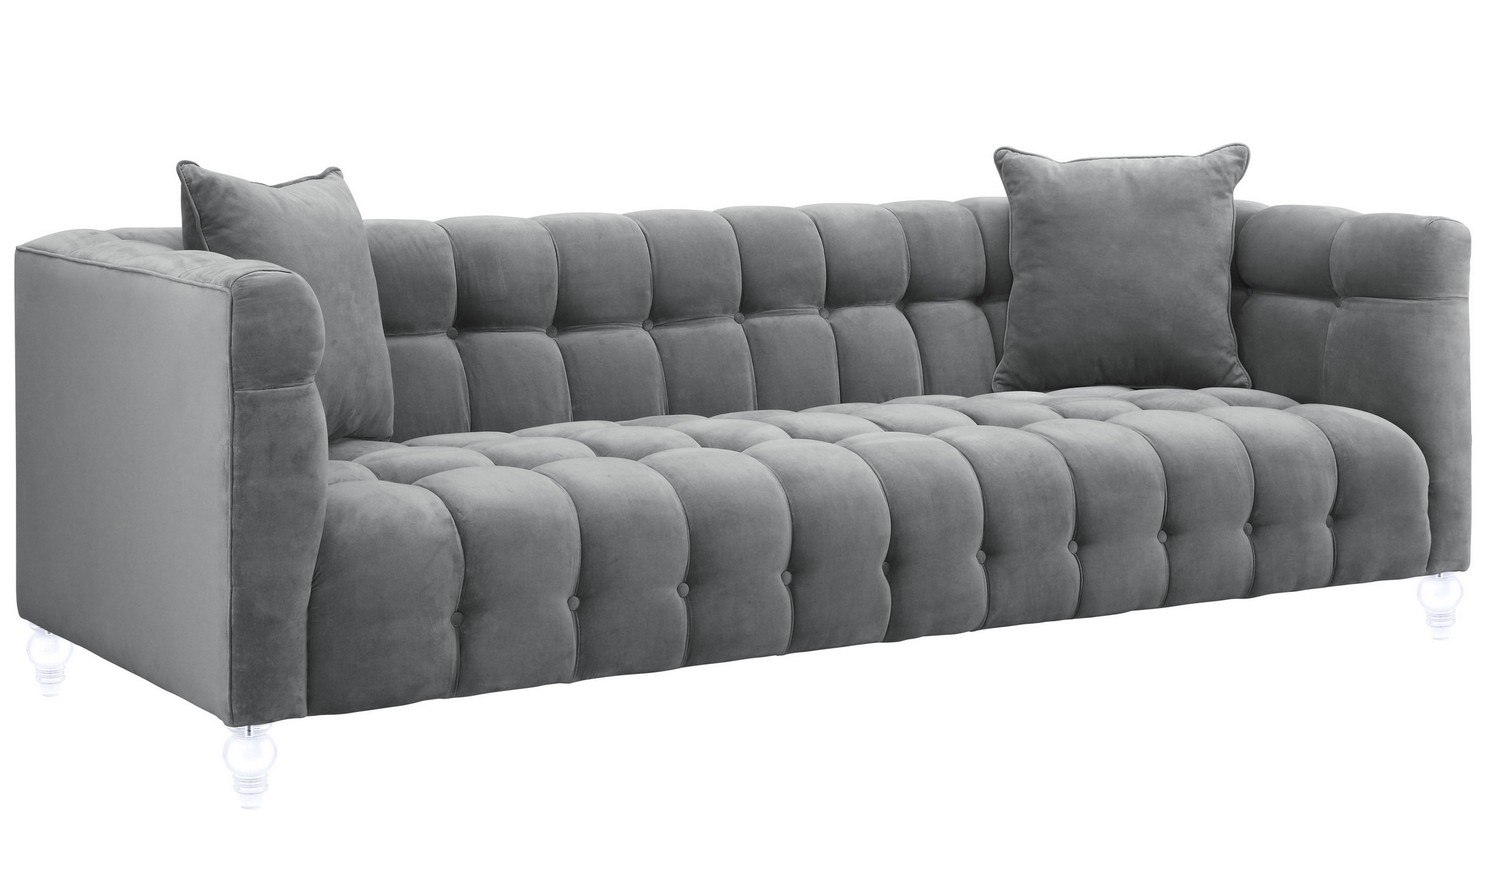 TOV Furniture Bea Grey Velvet Sofa S100 at Homelement